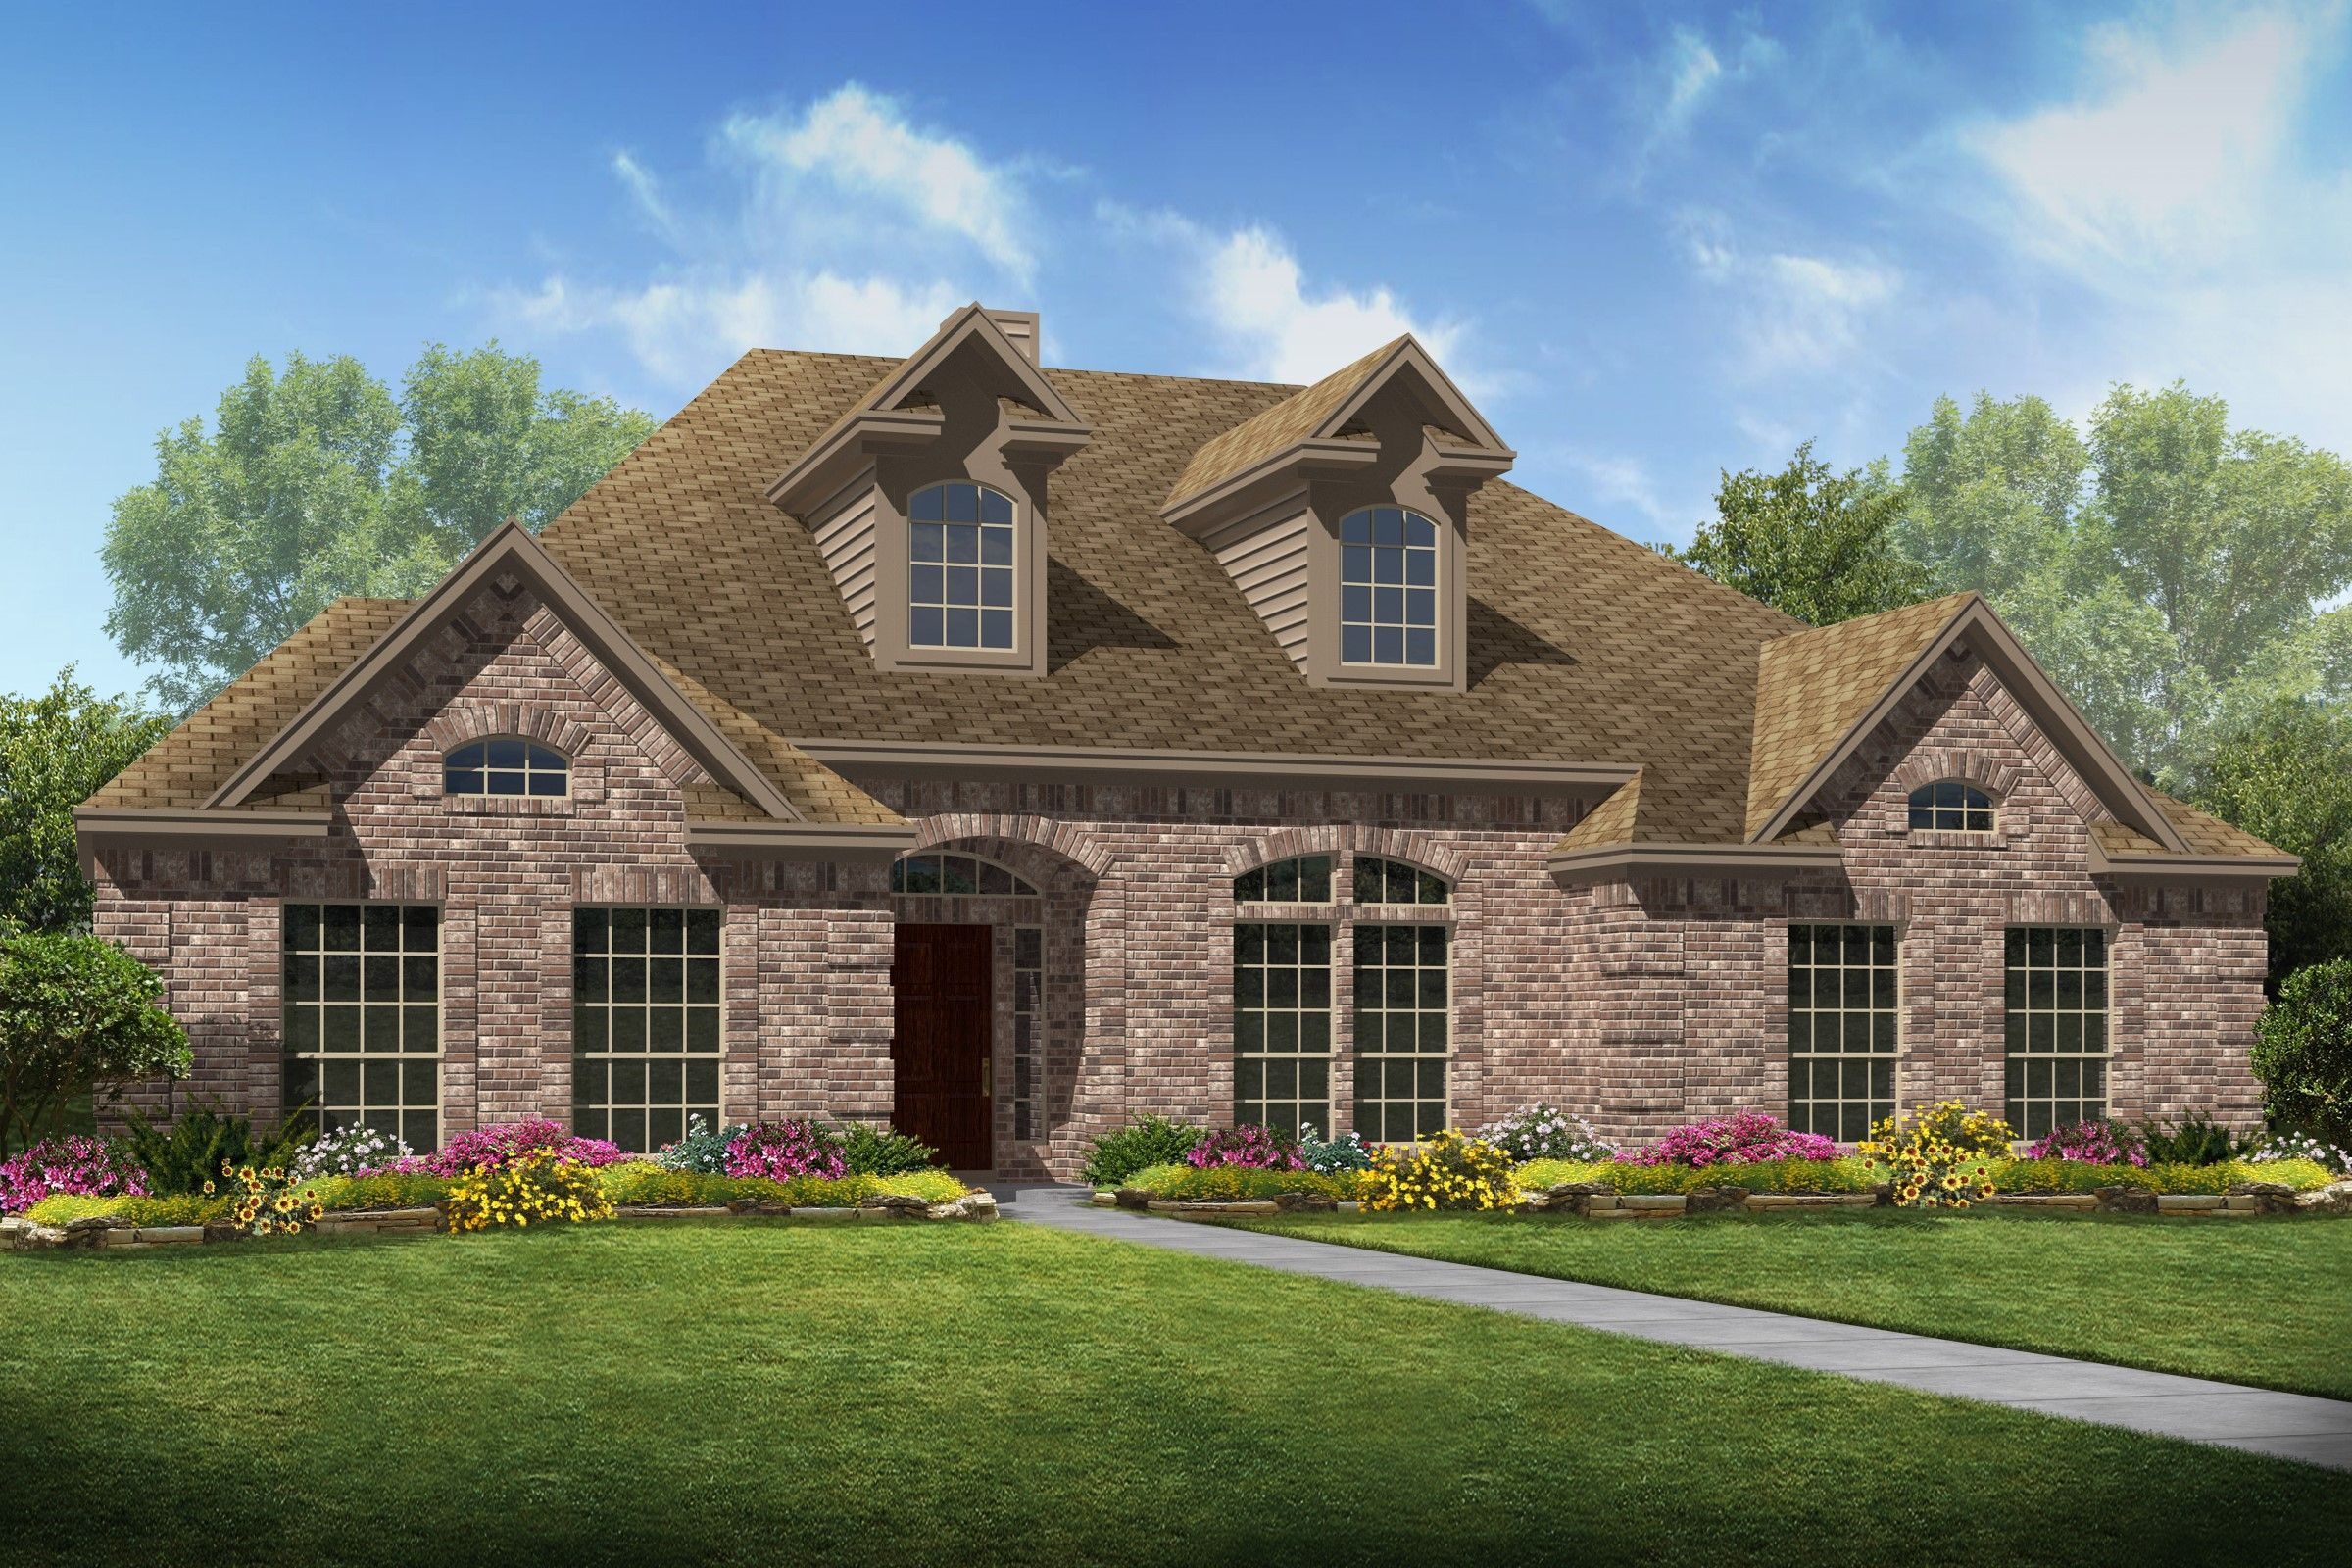 Single Family for Sale at Shefield 14827 Thunder Bay Row, Homesite 19 Baytown, Texas 77523 United States